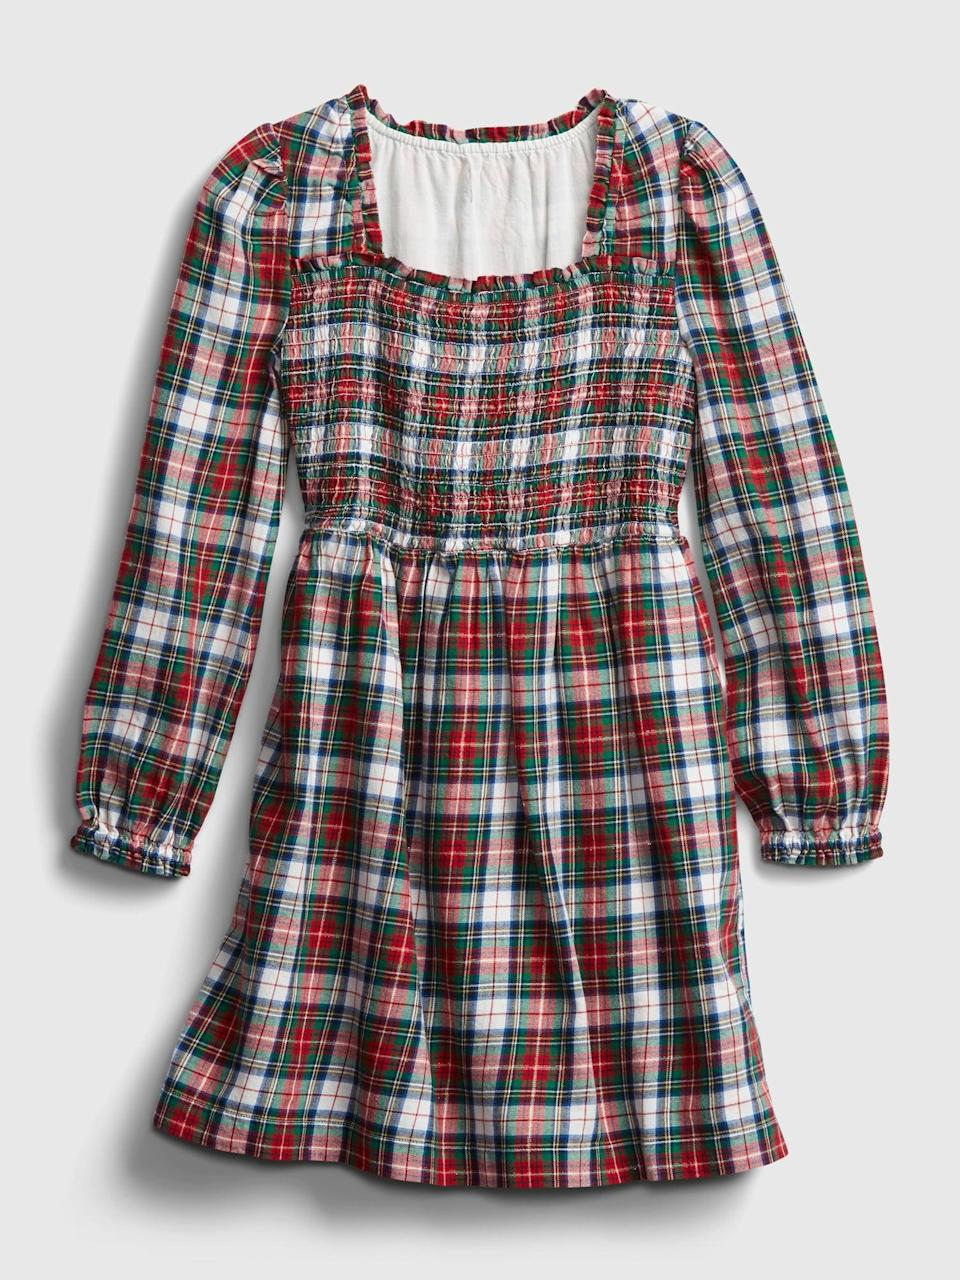 <p>This <span>Gap Kids Smocked Plaid Dress</span> ($29, originally $50) reminds us of a cute <b>American Girl</b> doll.</p>